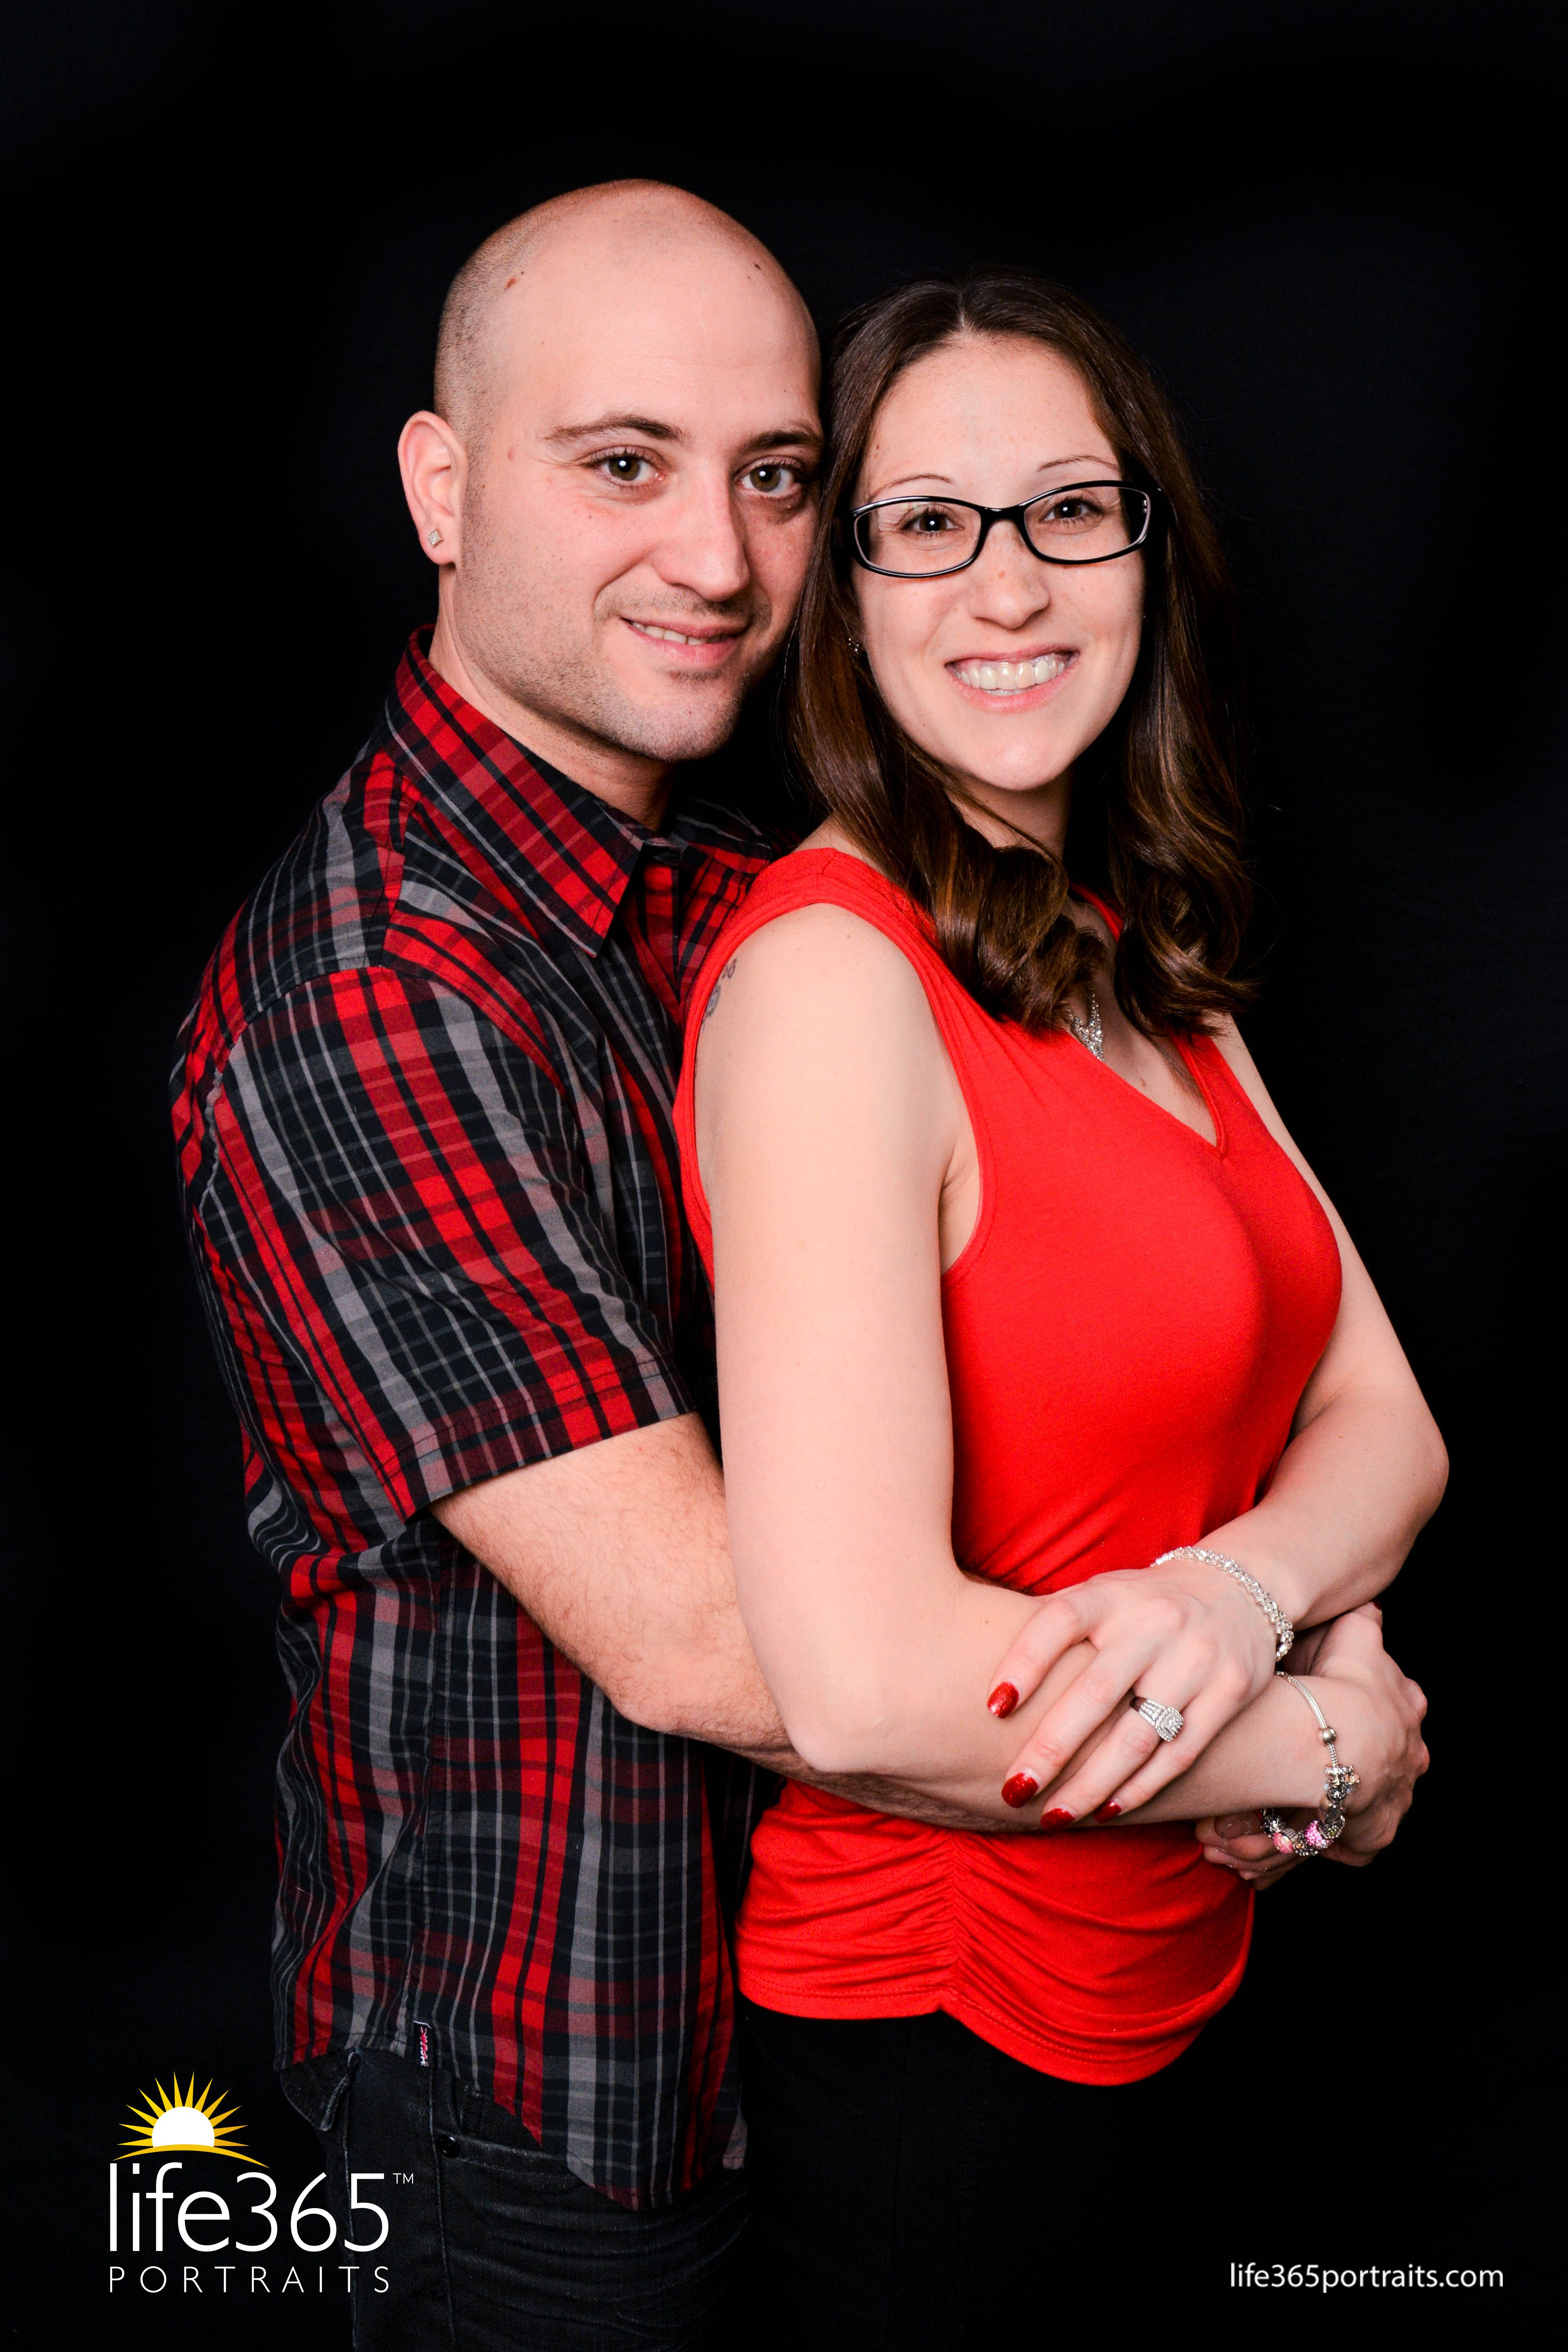 #parents #cute #love #happy #studiophotography #photography #life365